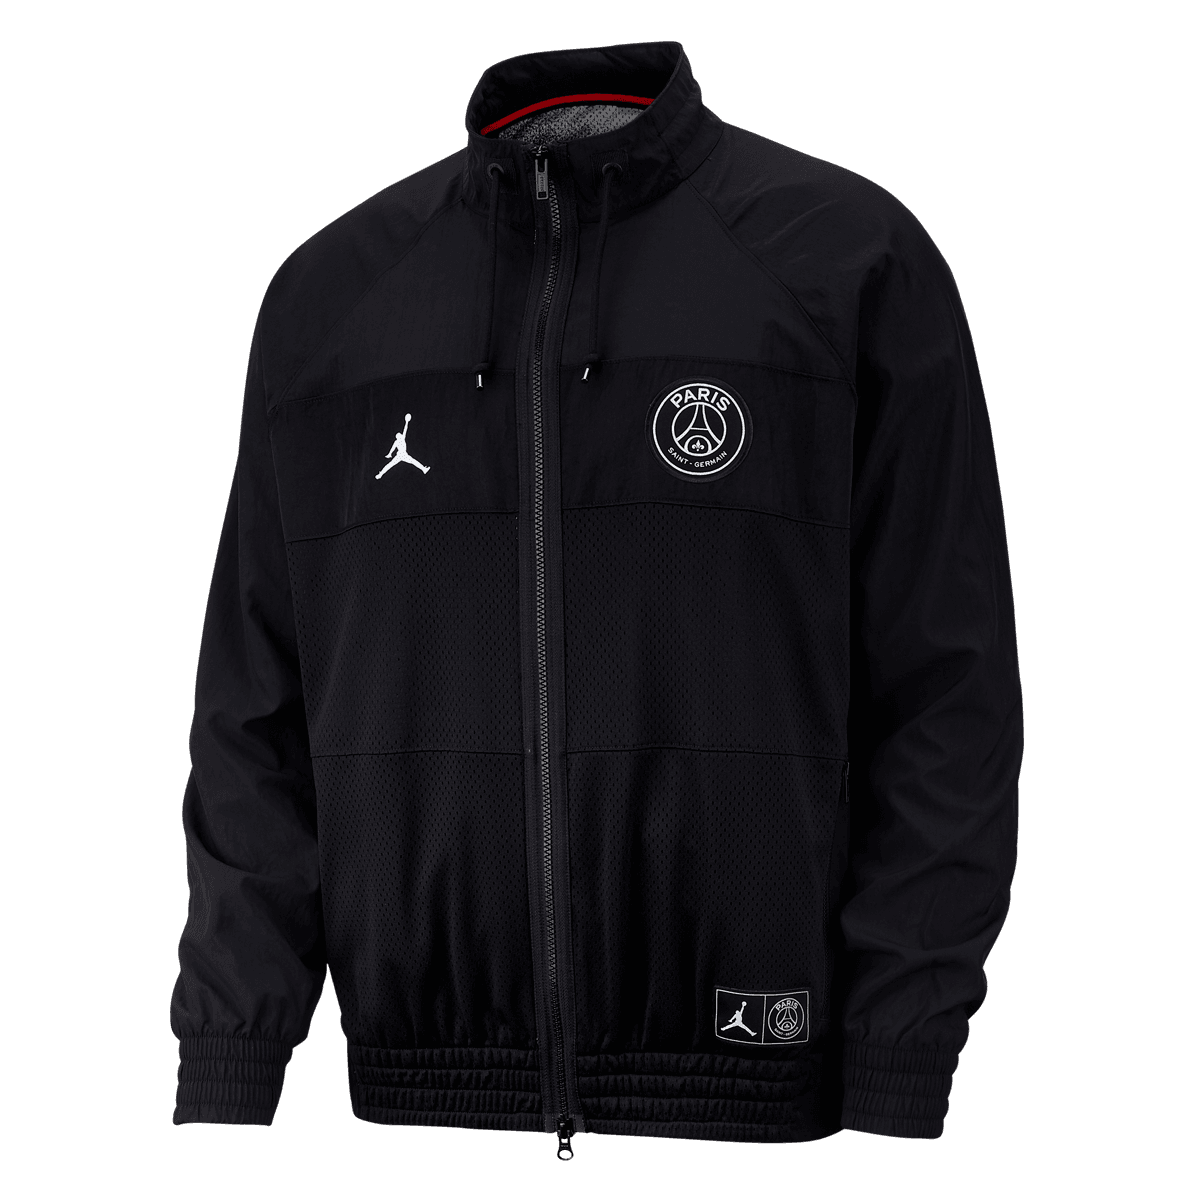 Nike Paris St. Germain Jacke Air Jordan Jacket schwarz